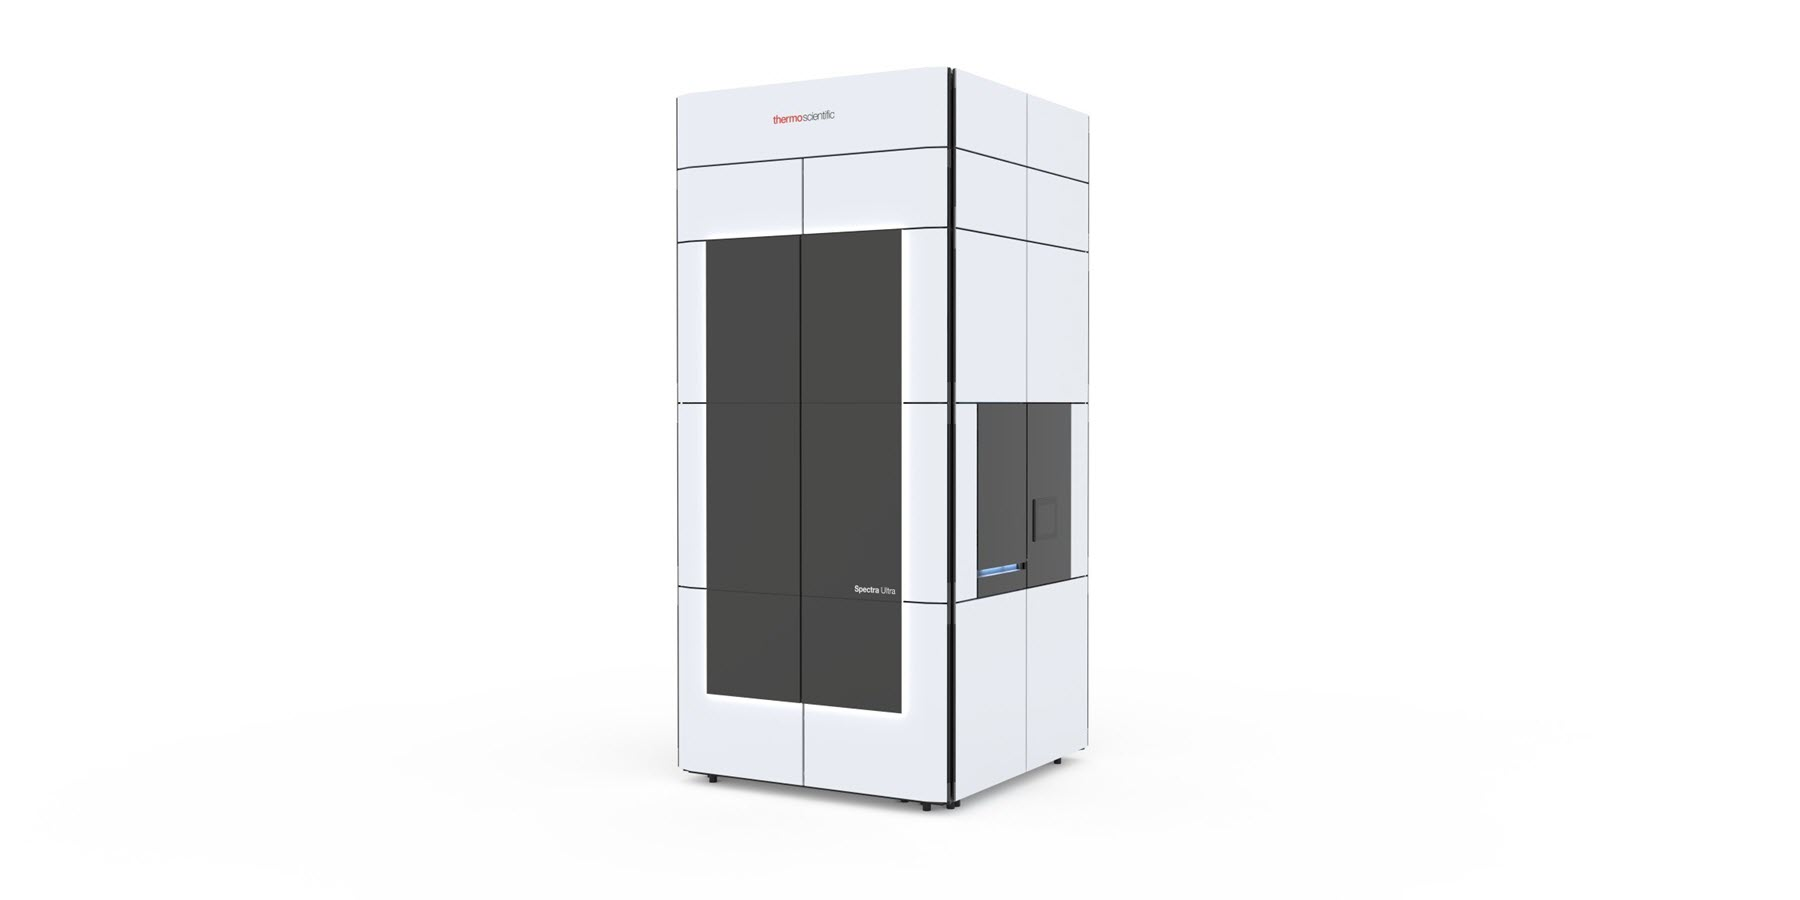 Thermo Scientific Spectra Ultra Offers a Leap Forward for Advanced Materials Characterization